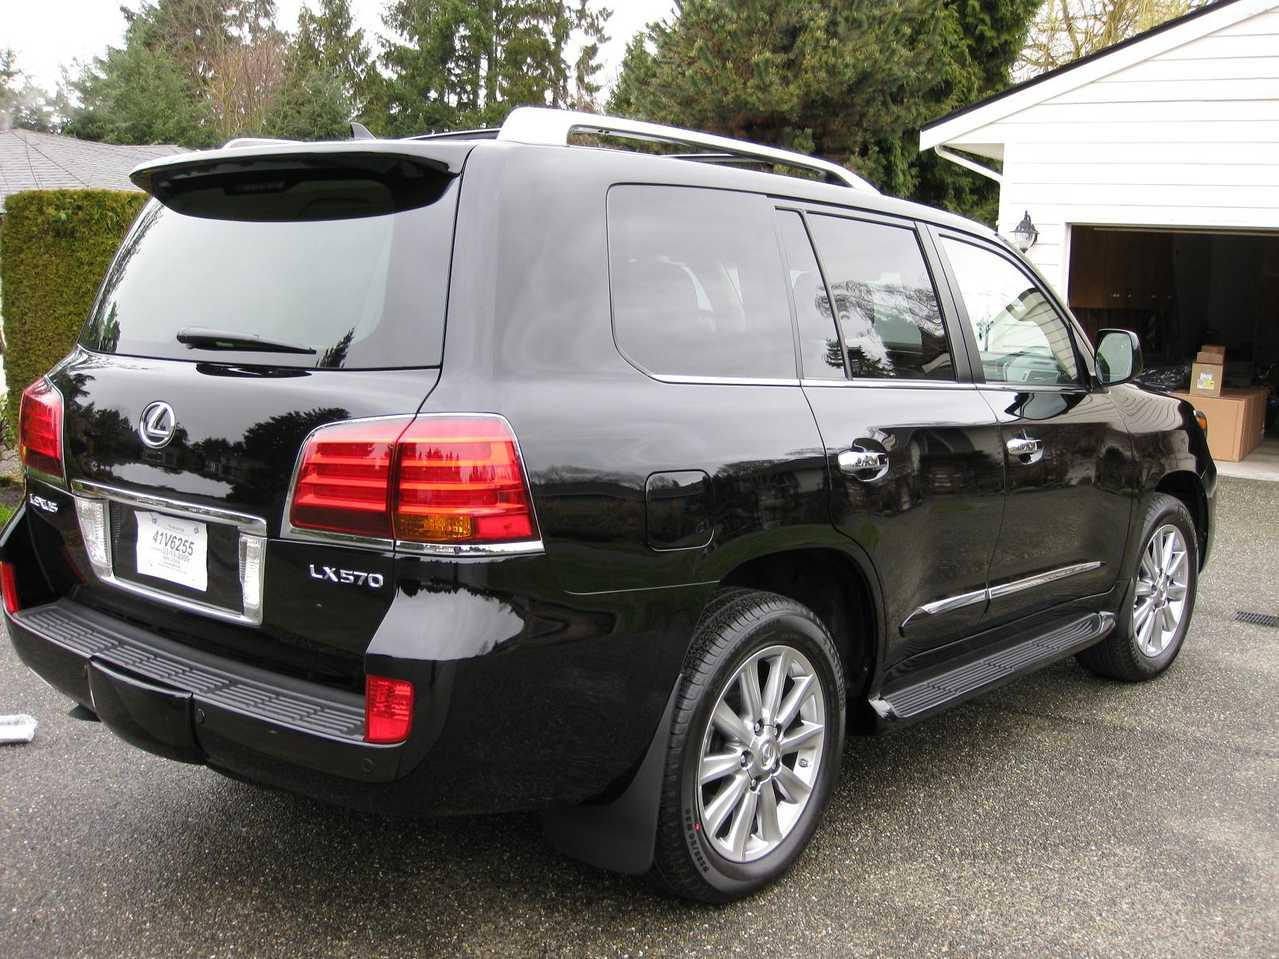 2009 lexus lx570 photos 5700cc gasoline automatic for sale. Black Bedroom Furniture Sets. Home Design Ideas